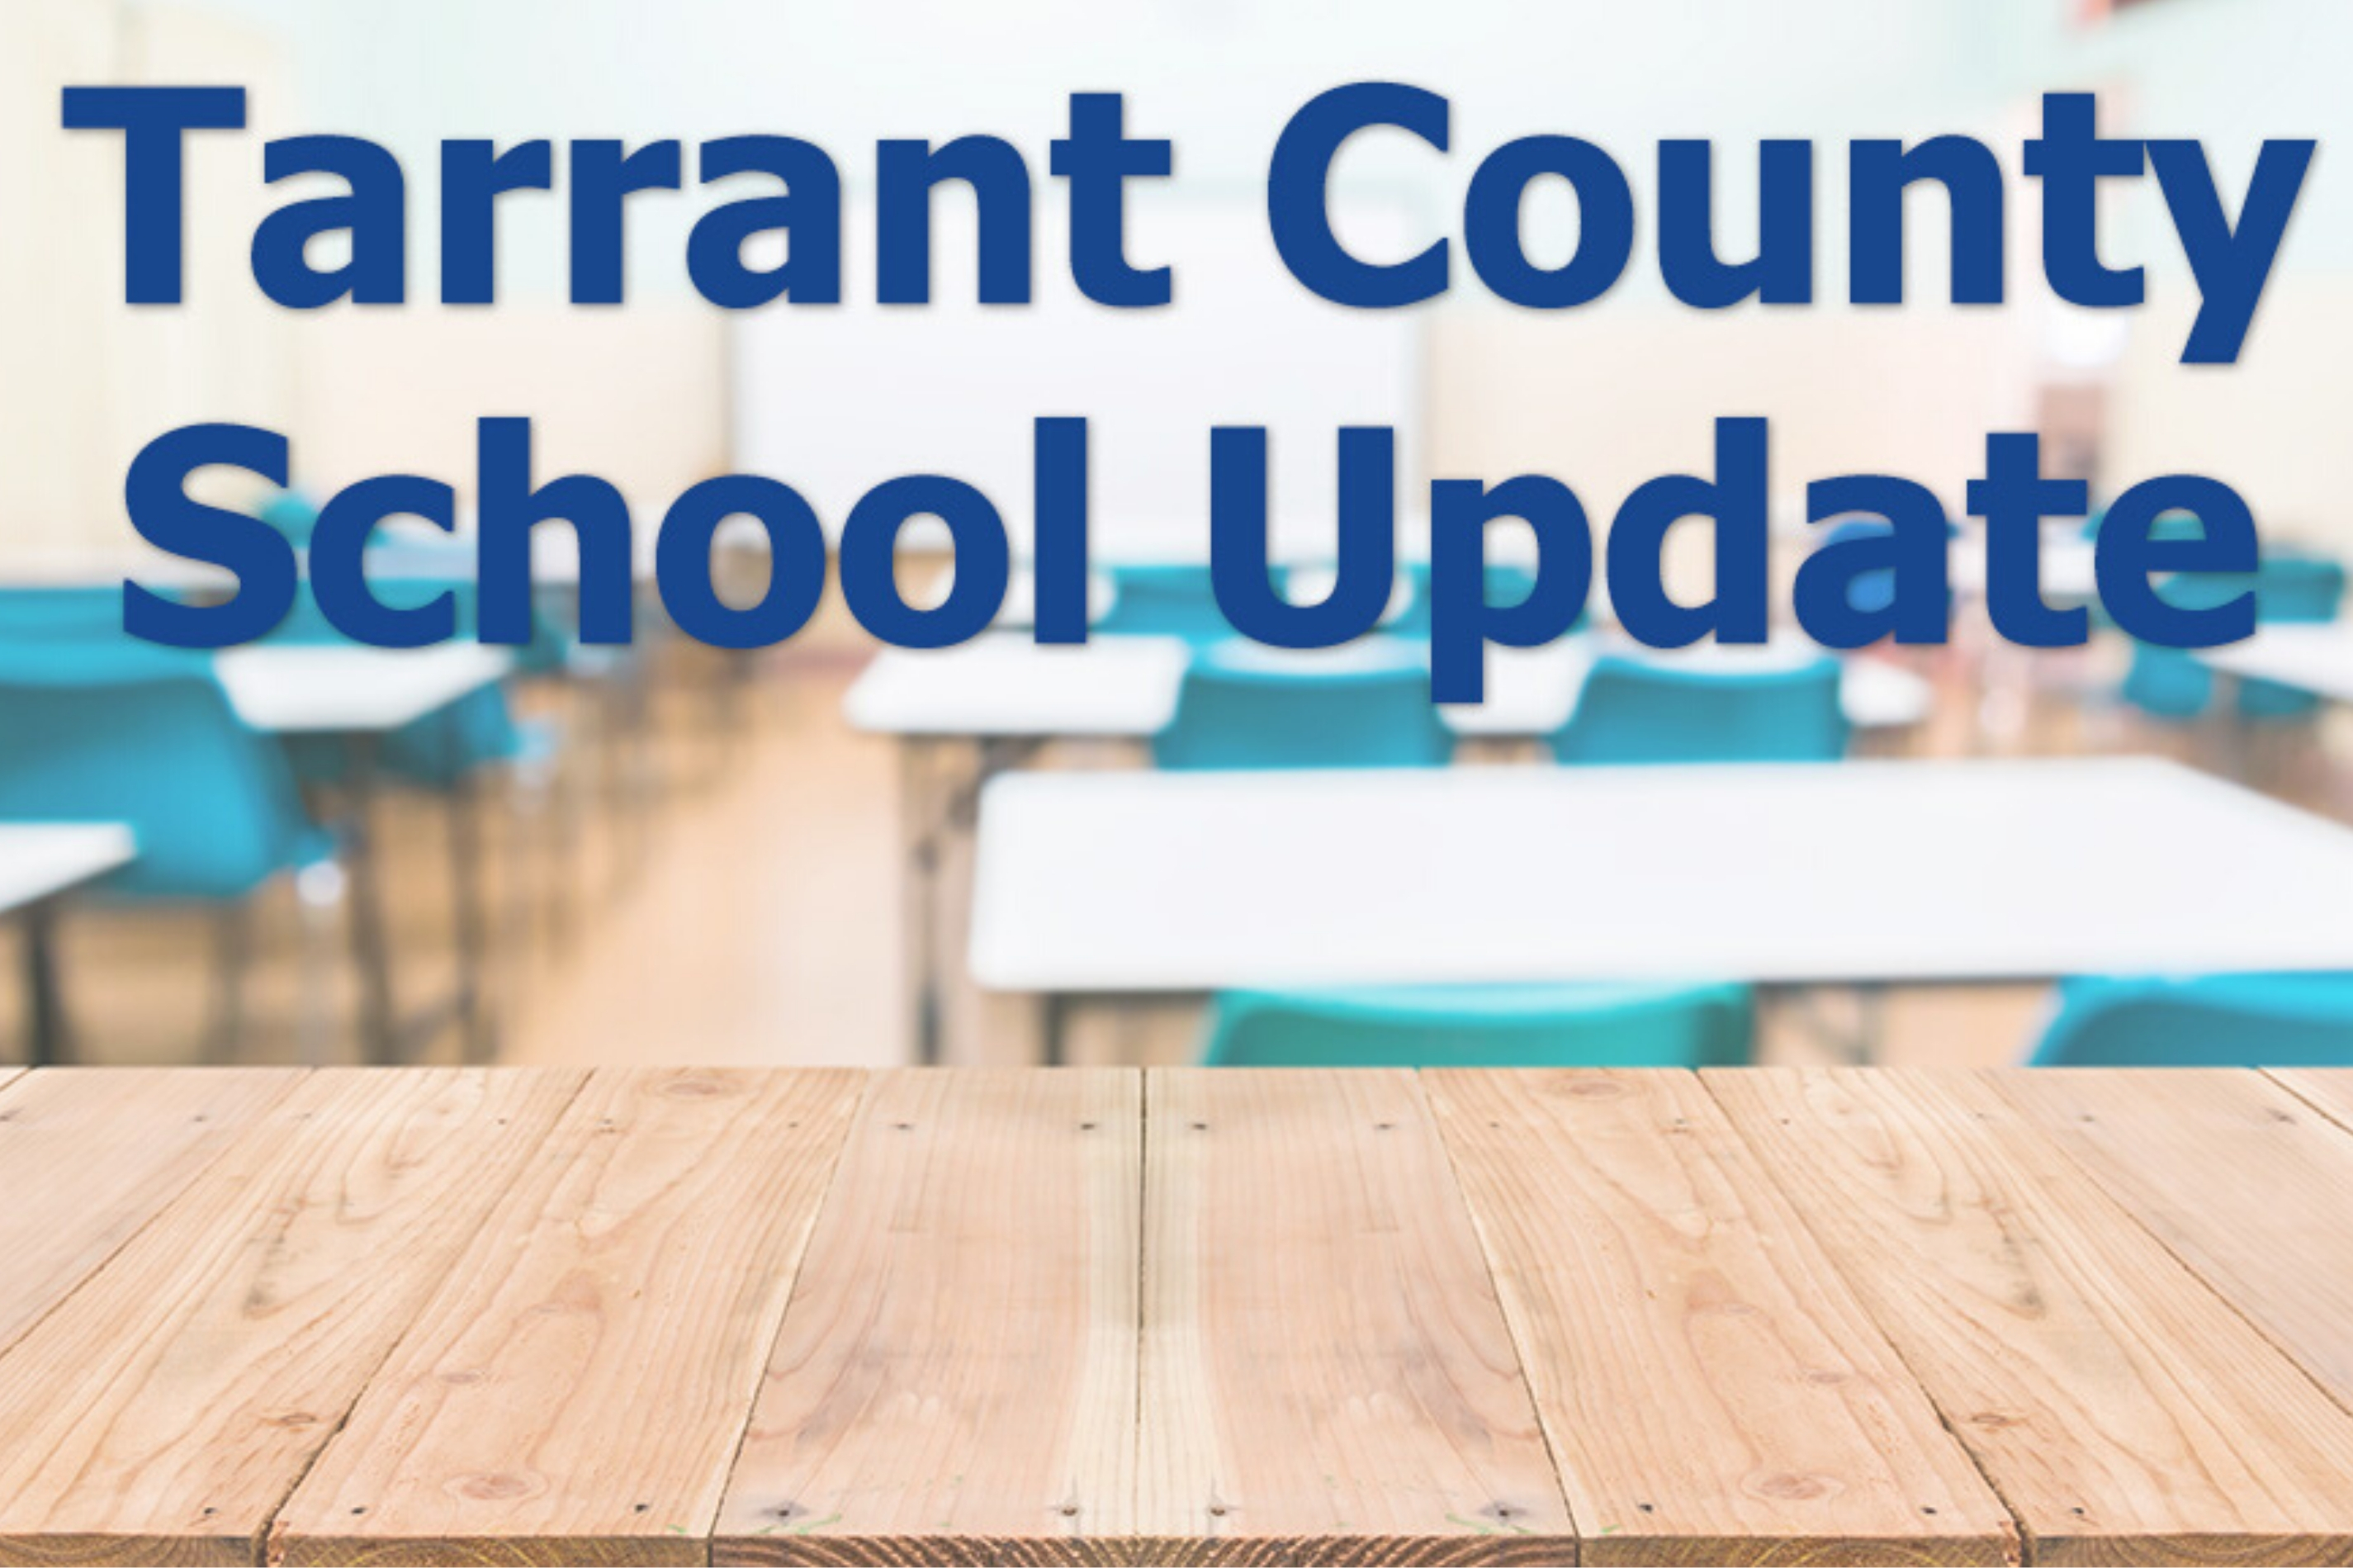 Tarrant County Public, Non-ReligiousPrivate Schools to Offer Classes Online Only Through Sept 28, 2020 in Fight Against Covid-19